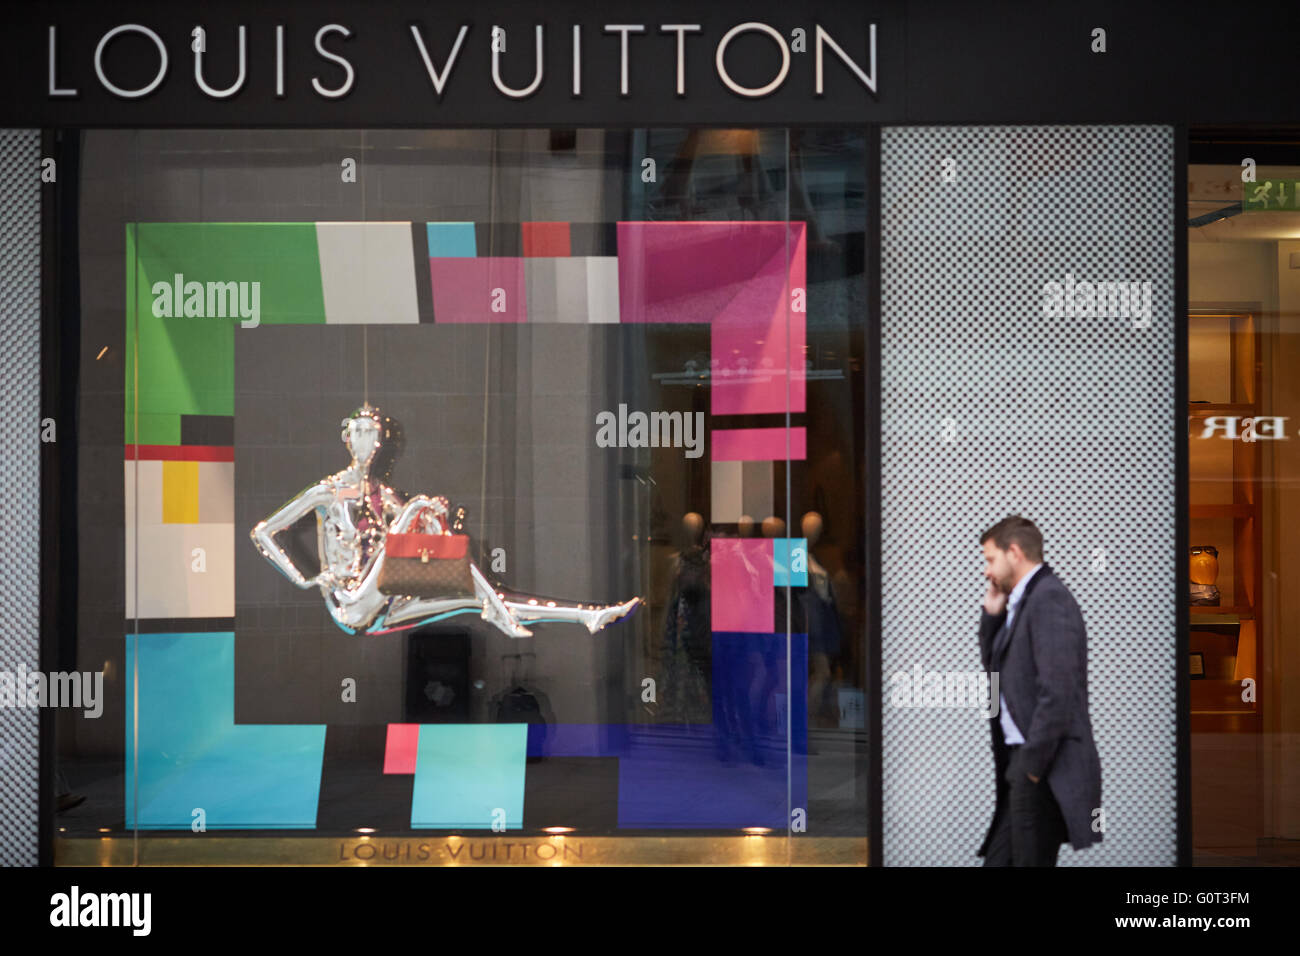 Manchester cathedral walk Louis Vuitton store exterior Quality deluxe luxury posh well hi-class rich cut above money Stock Photo